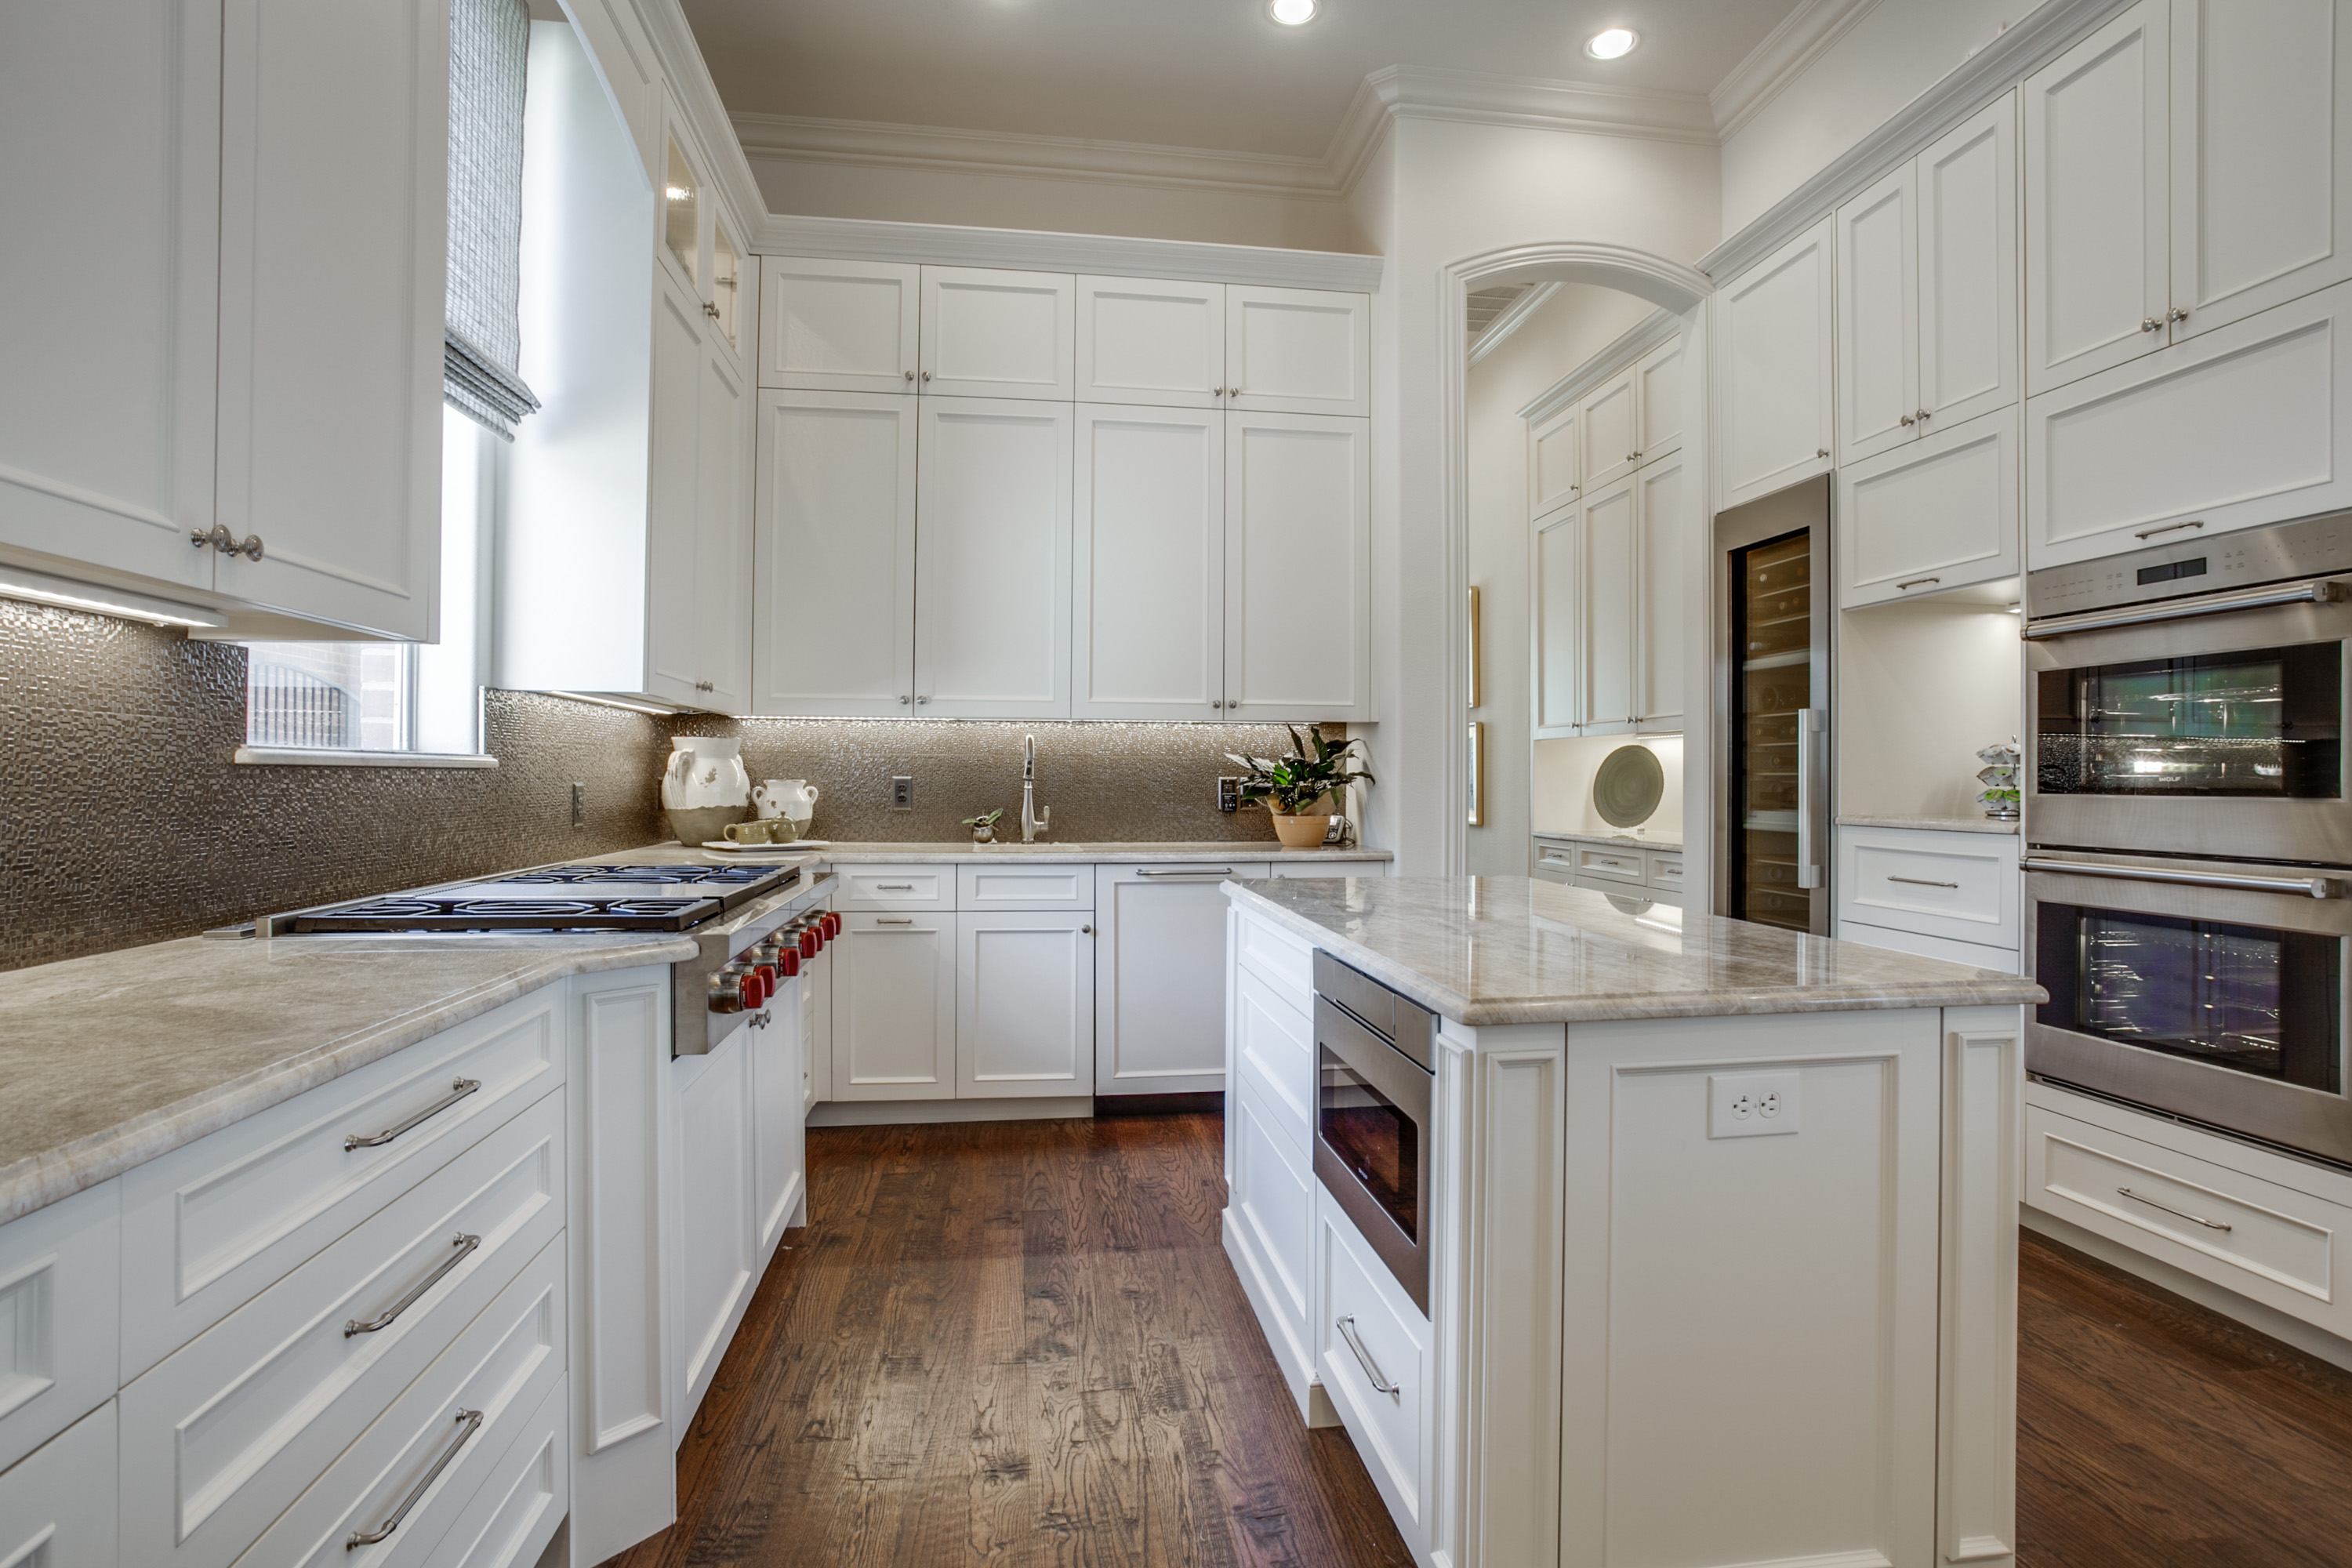 remodel best lowes of prices ikea estimate cabinets cost stunning kitchen